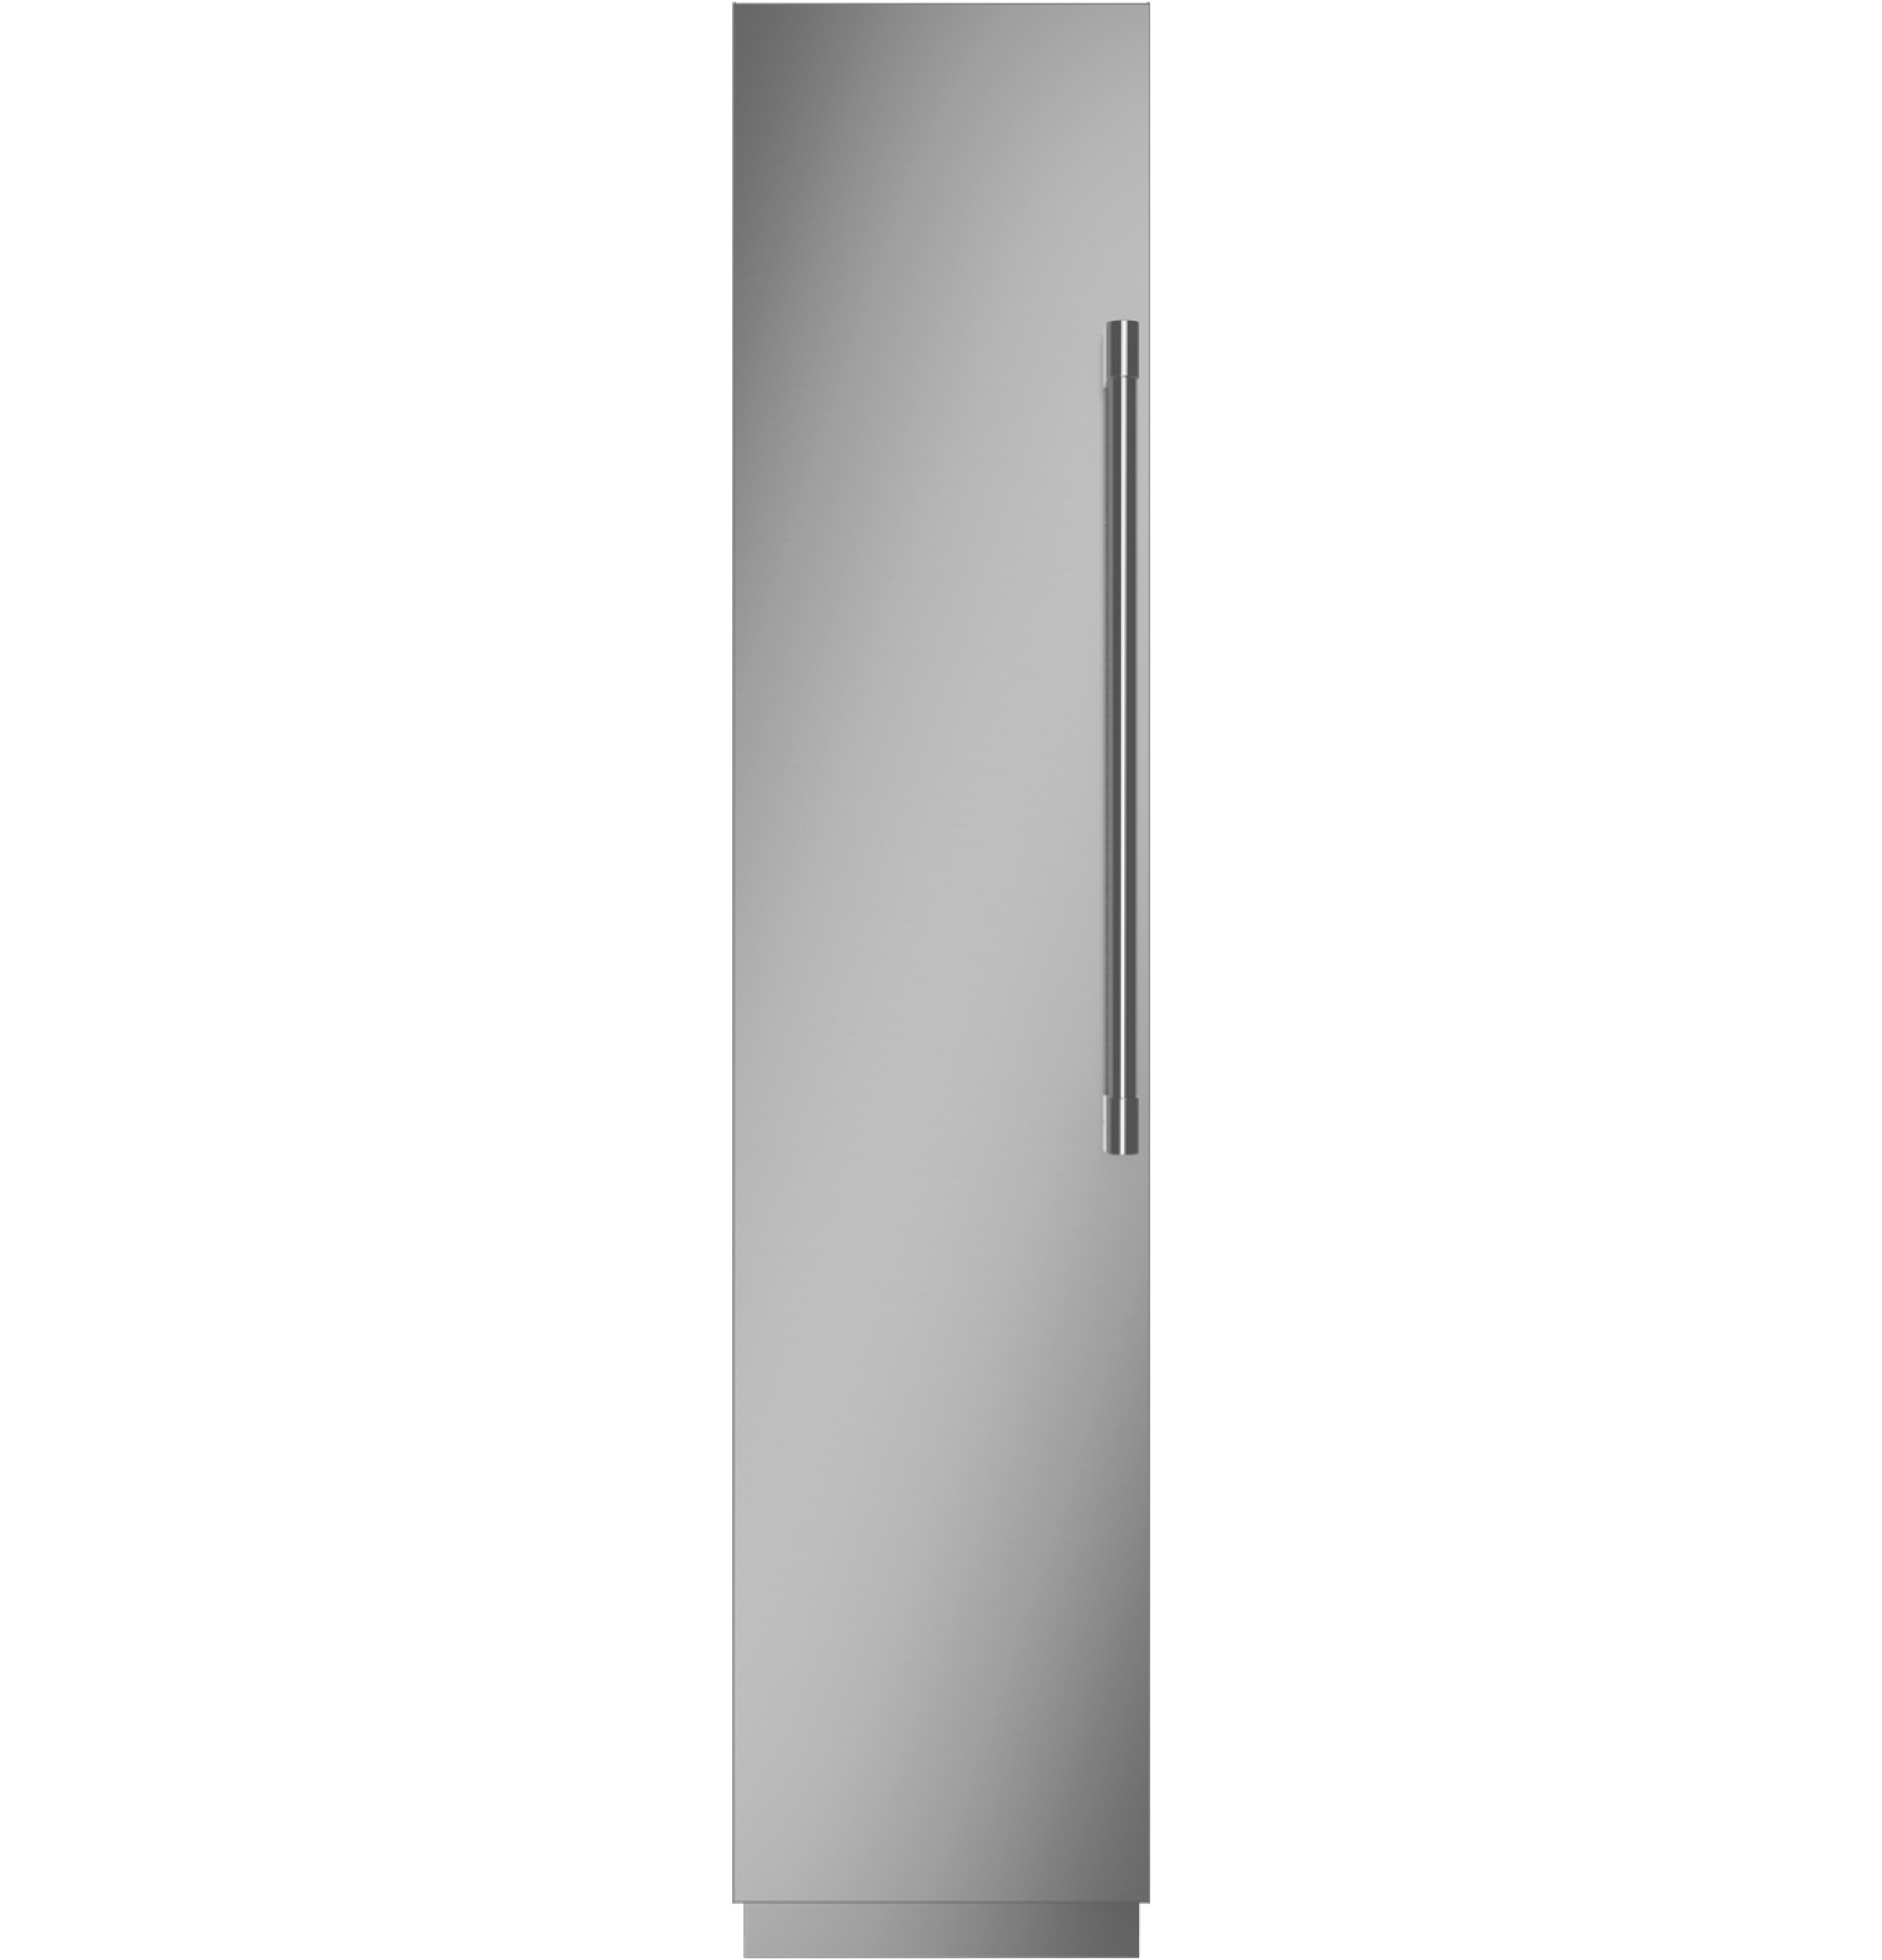 "Monogram Monogram 18"" Smart Integrated Column Freezer"